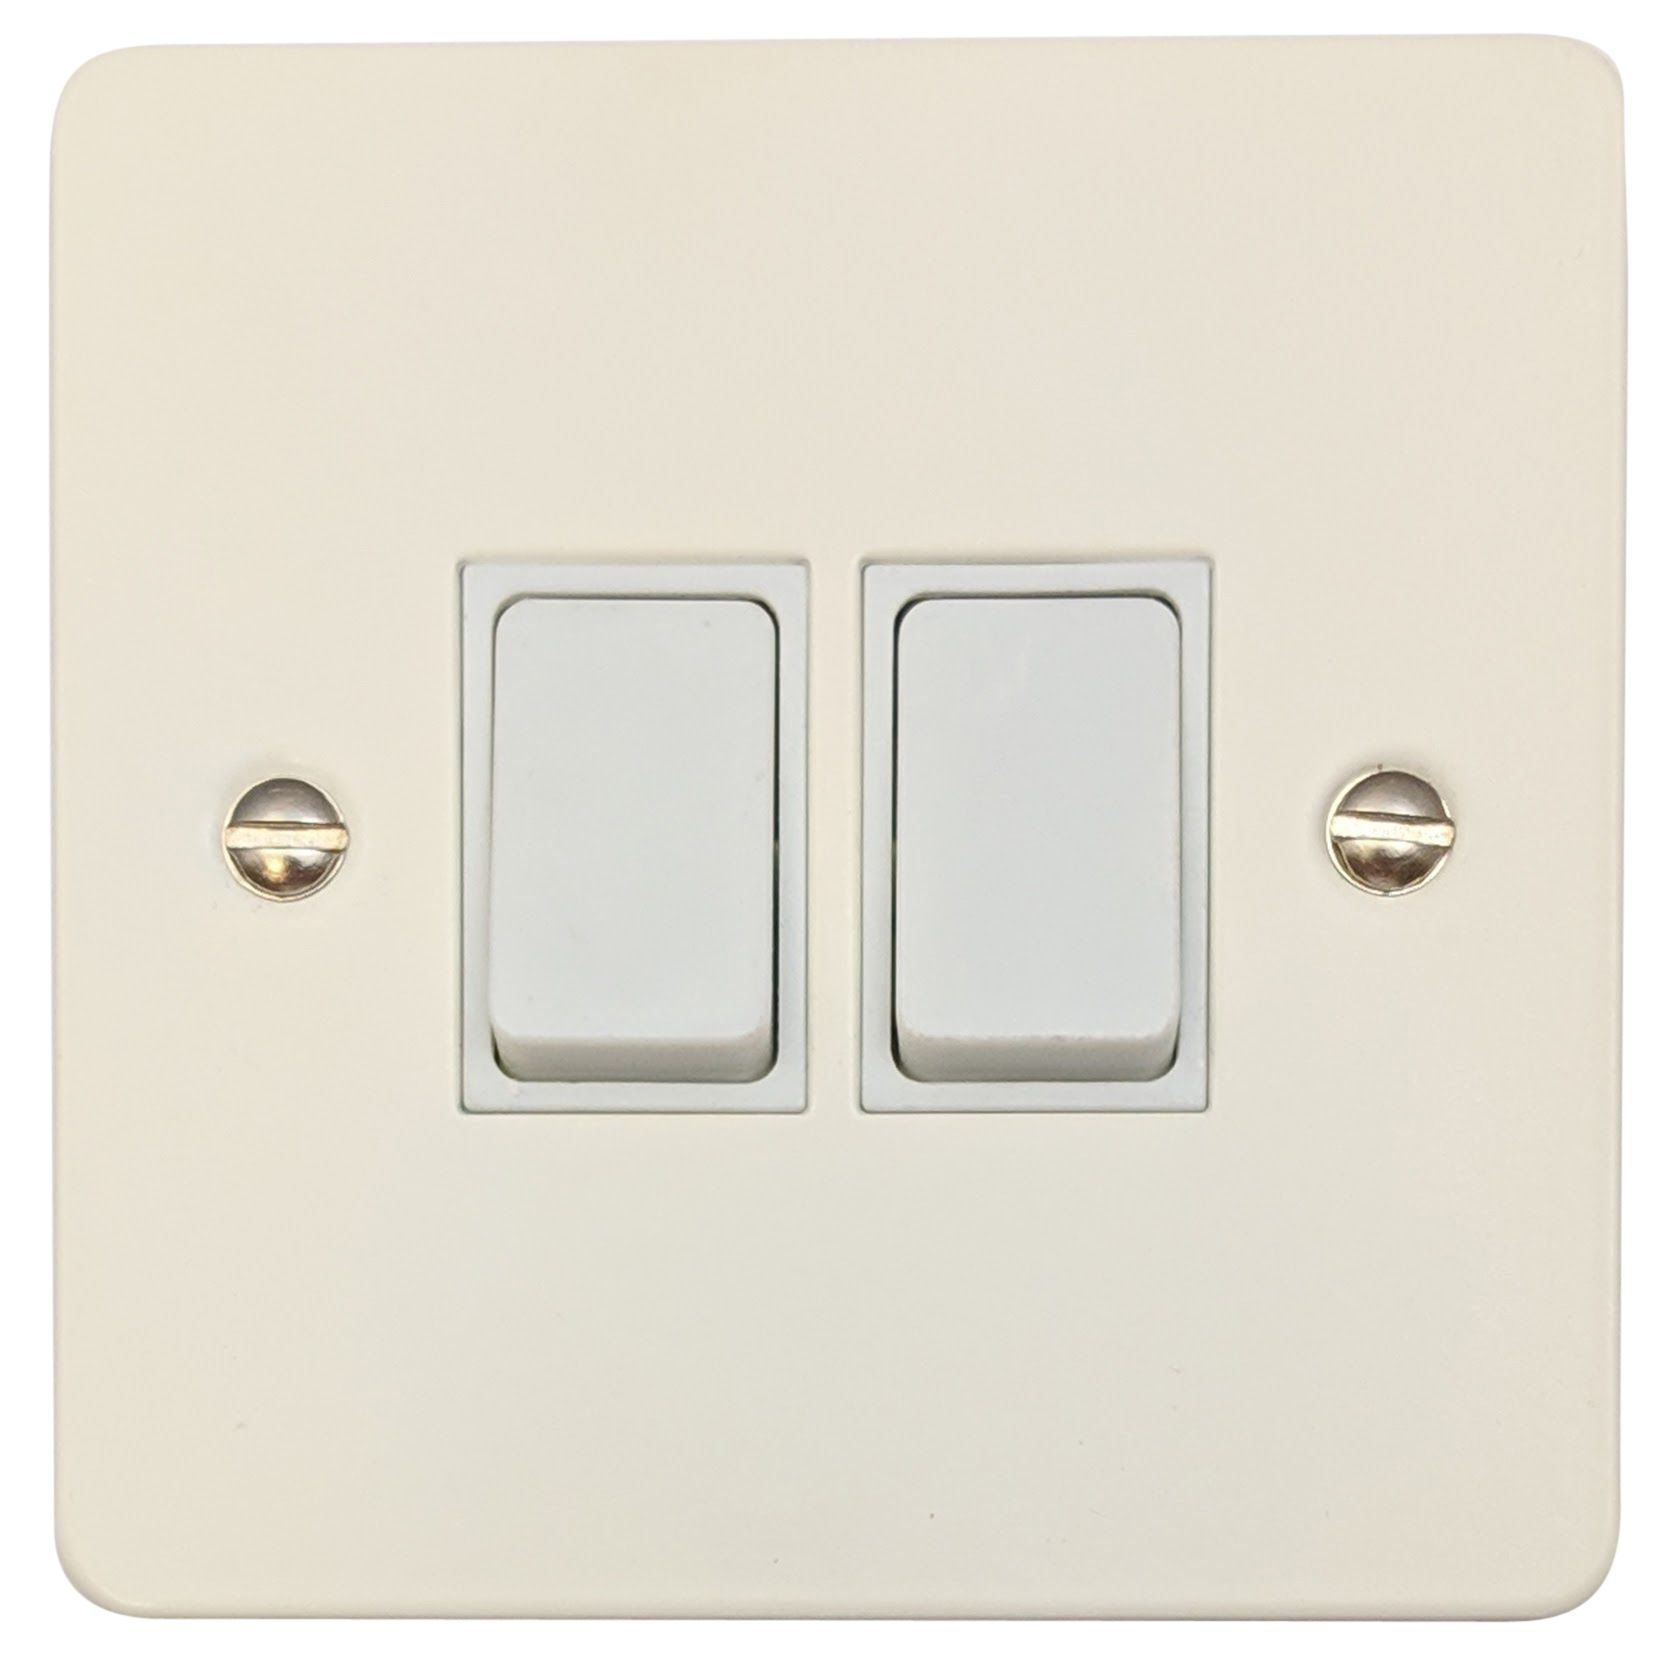 G&H FW2W Flat Plate Matt White 2 Gang 1 or 2 Way Rocker Light Switch ...